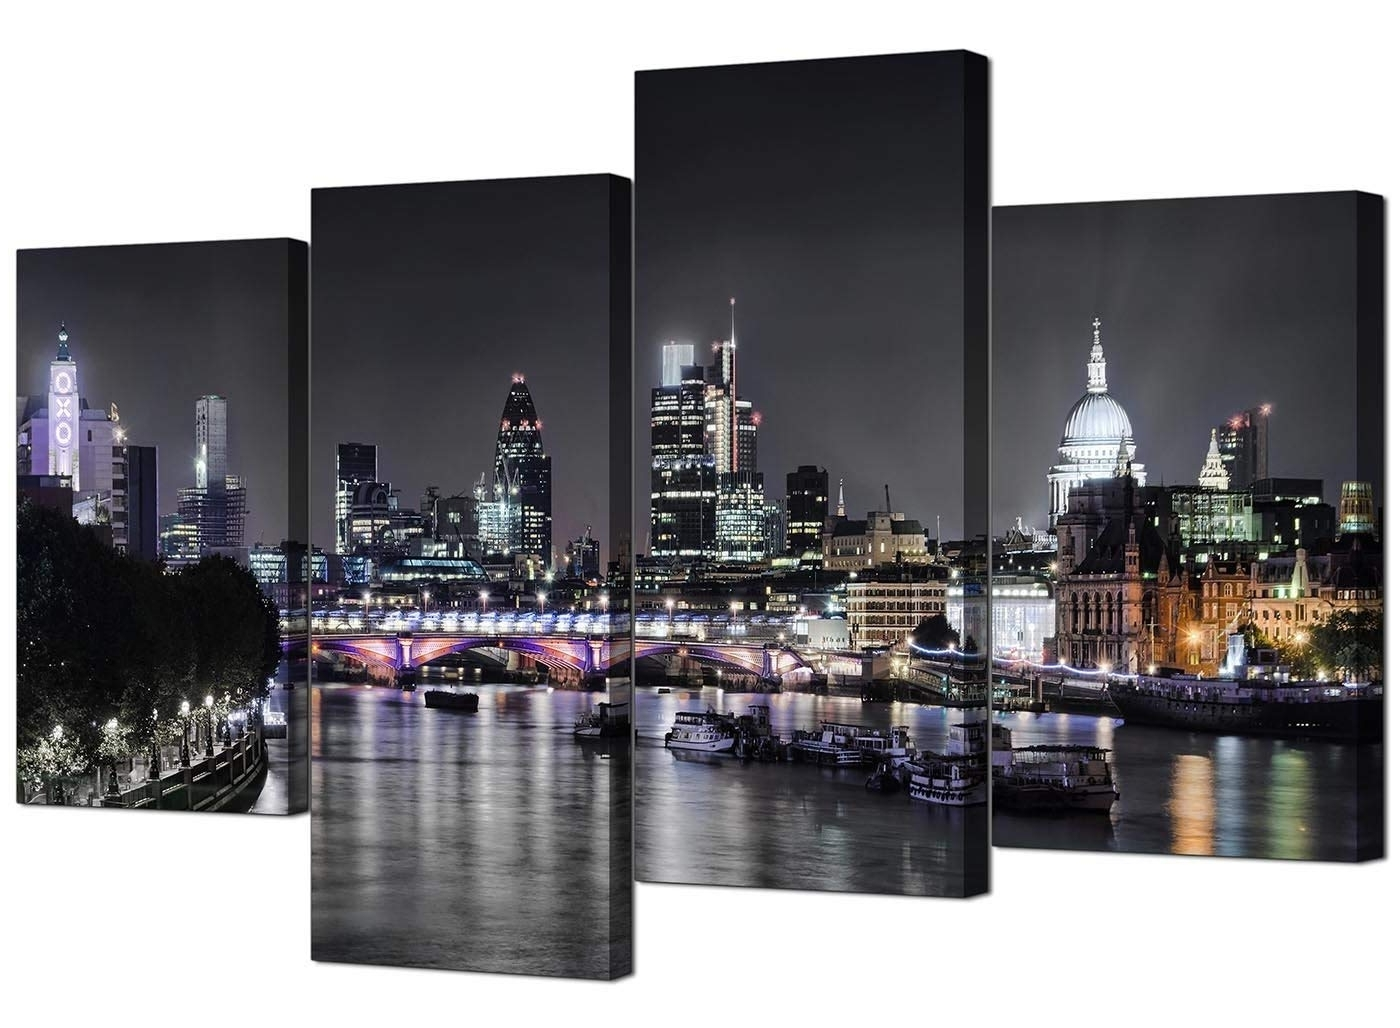 London Wall Art For Well Known Canvas Wall Art Of London Skyline For Your Living Room – 4 Panel (Gallery 4 of 20)